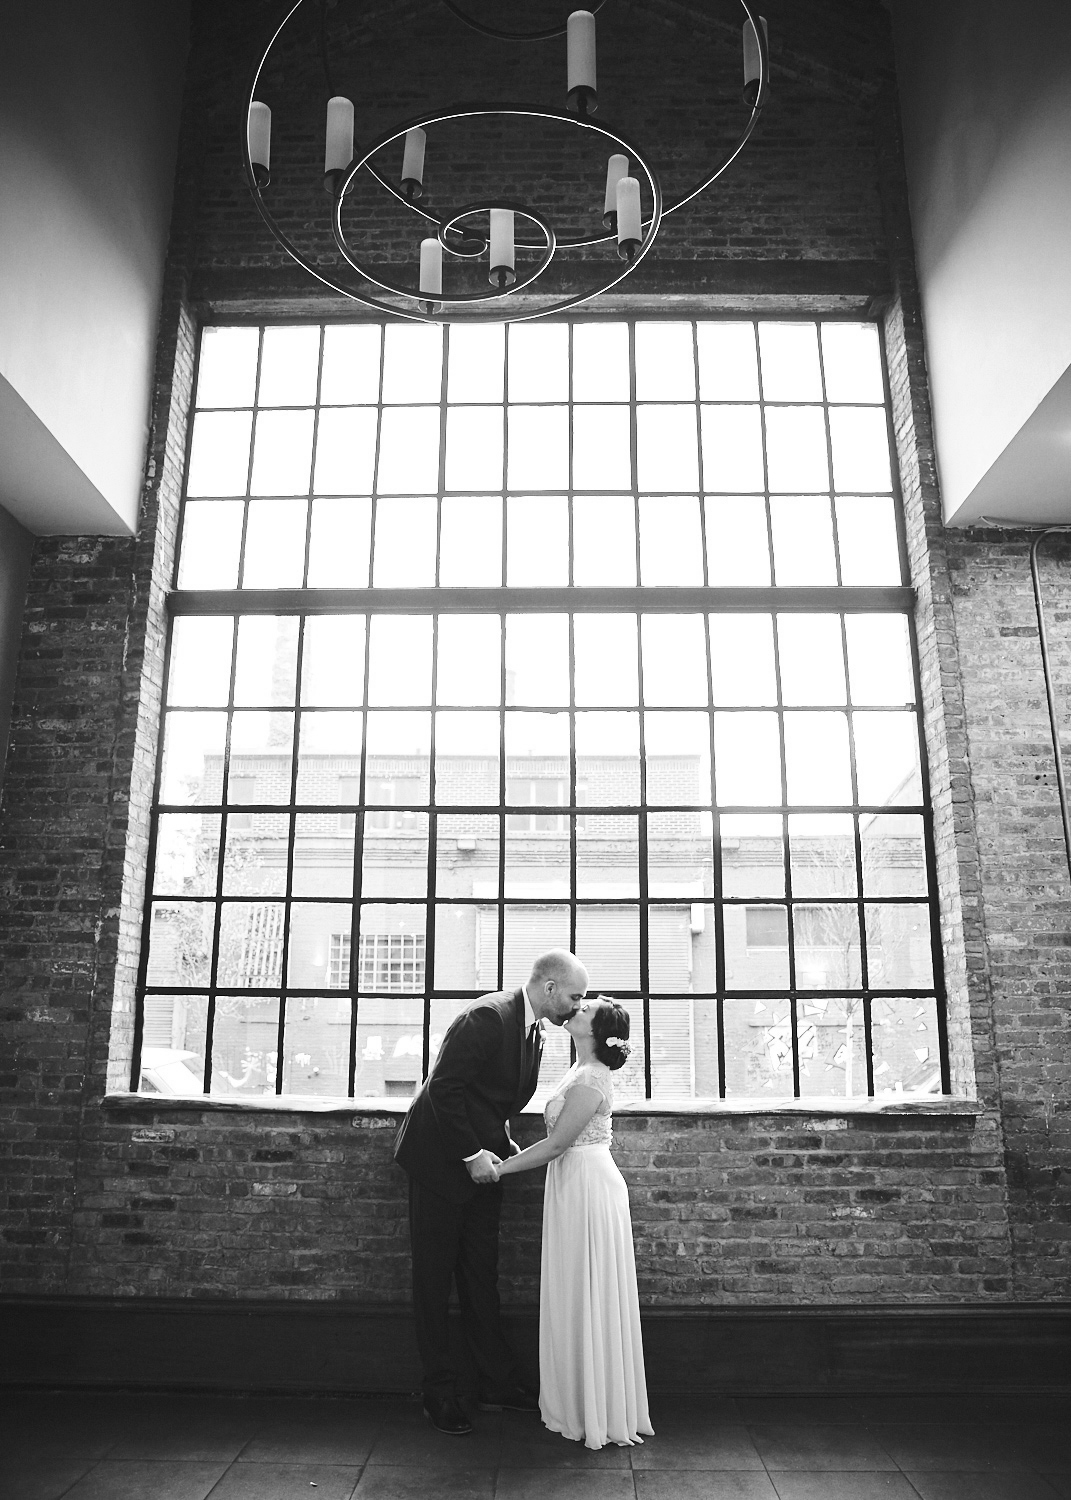 161022_A&B_26BridgeStWedding_By_BriJohnsonWeddings_0060.jpg